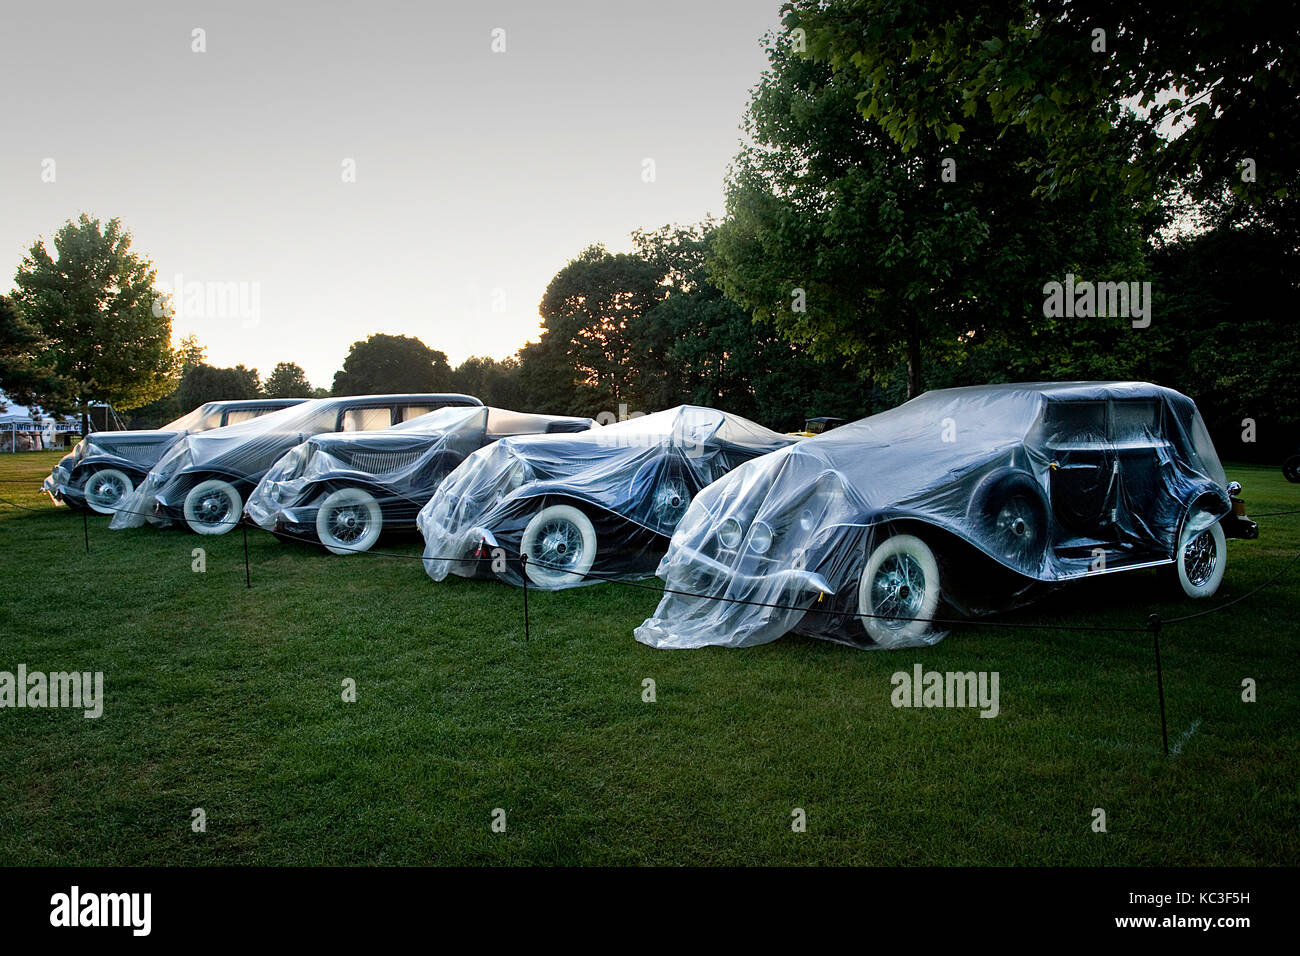 Classic Cars Stock Photos & Classic Cars Stock Images - Alamy